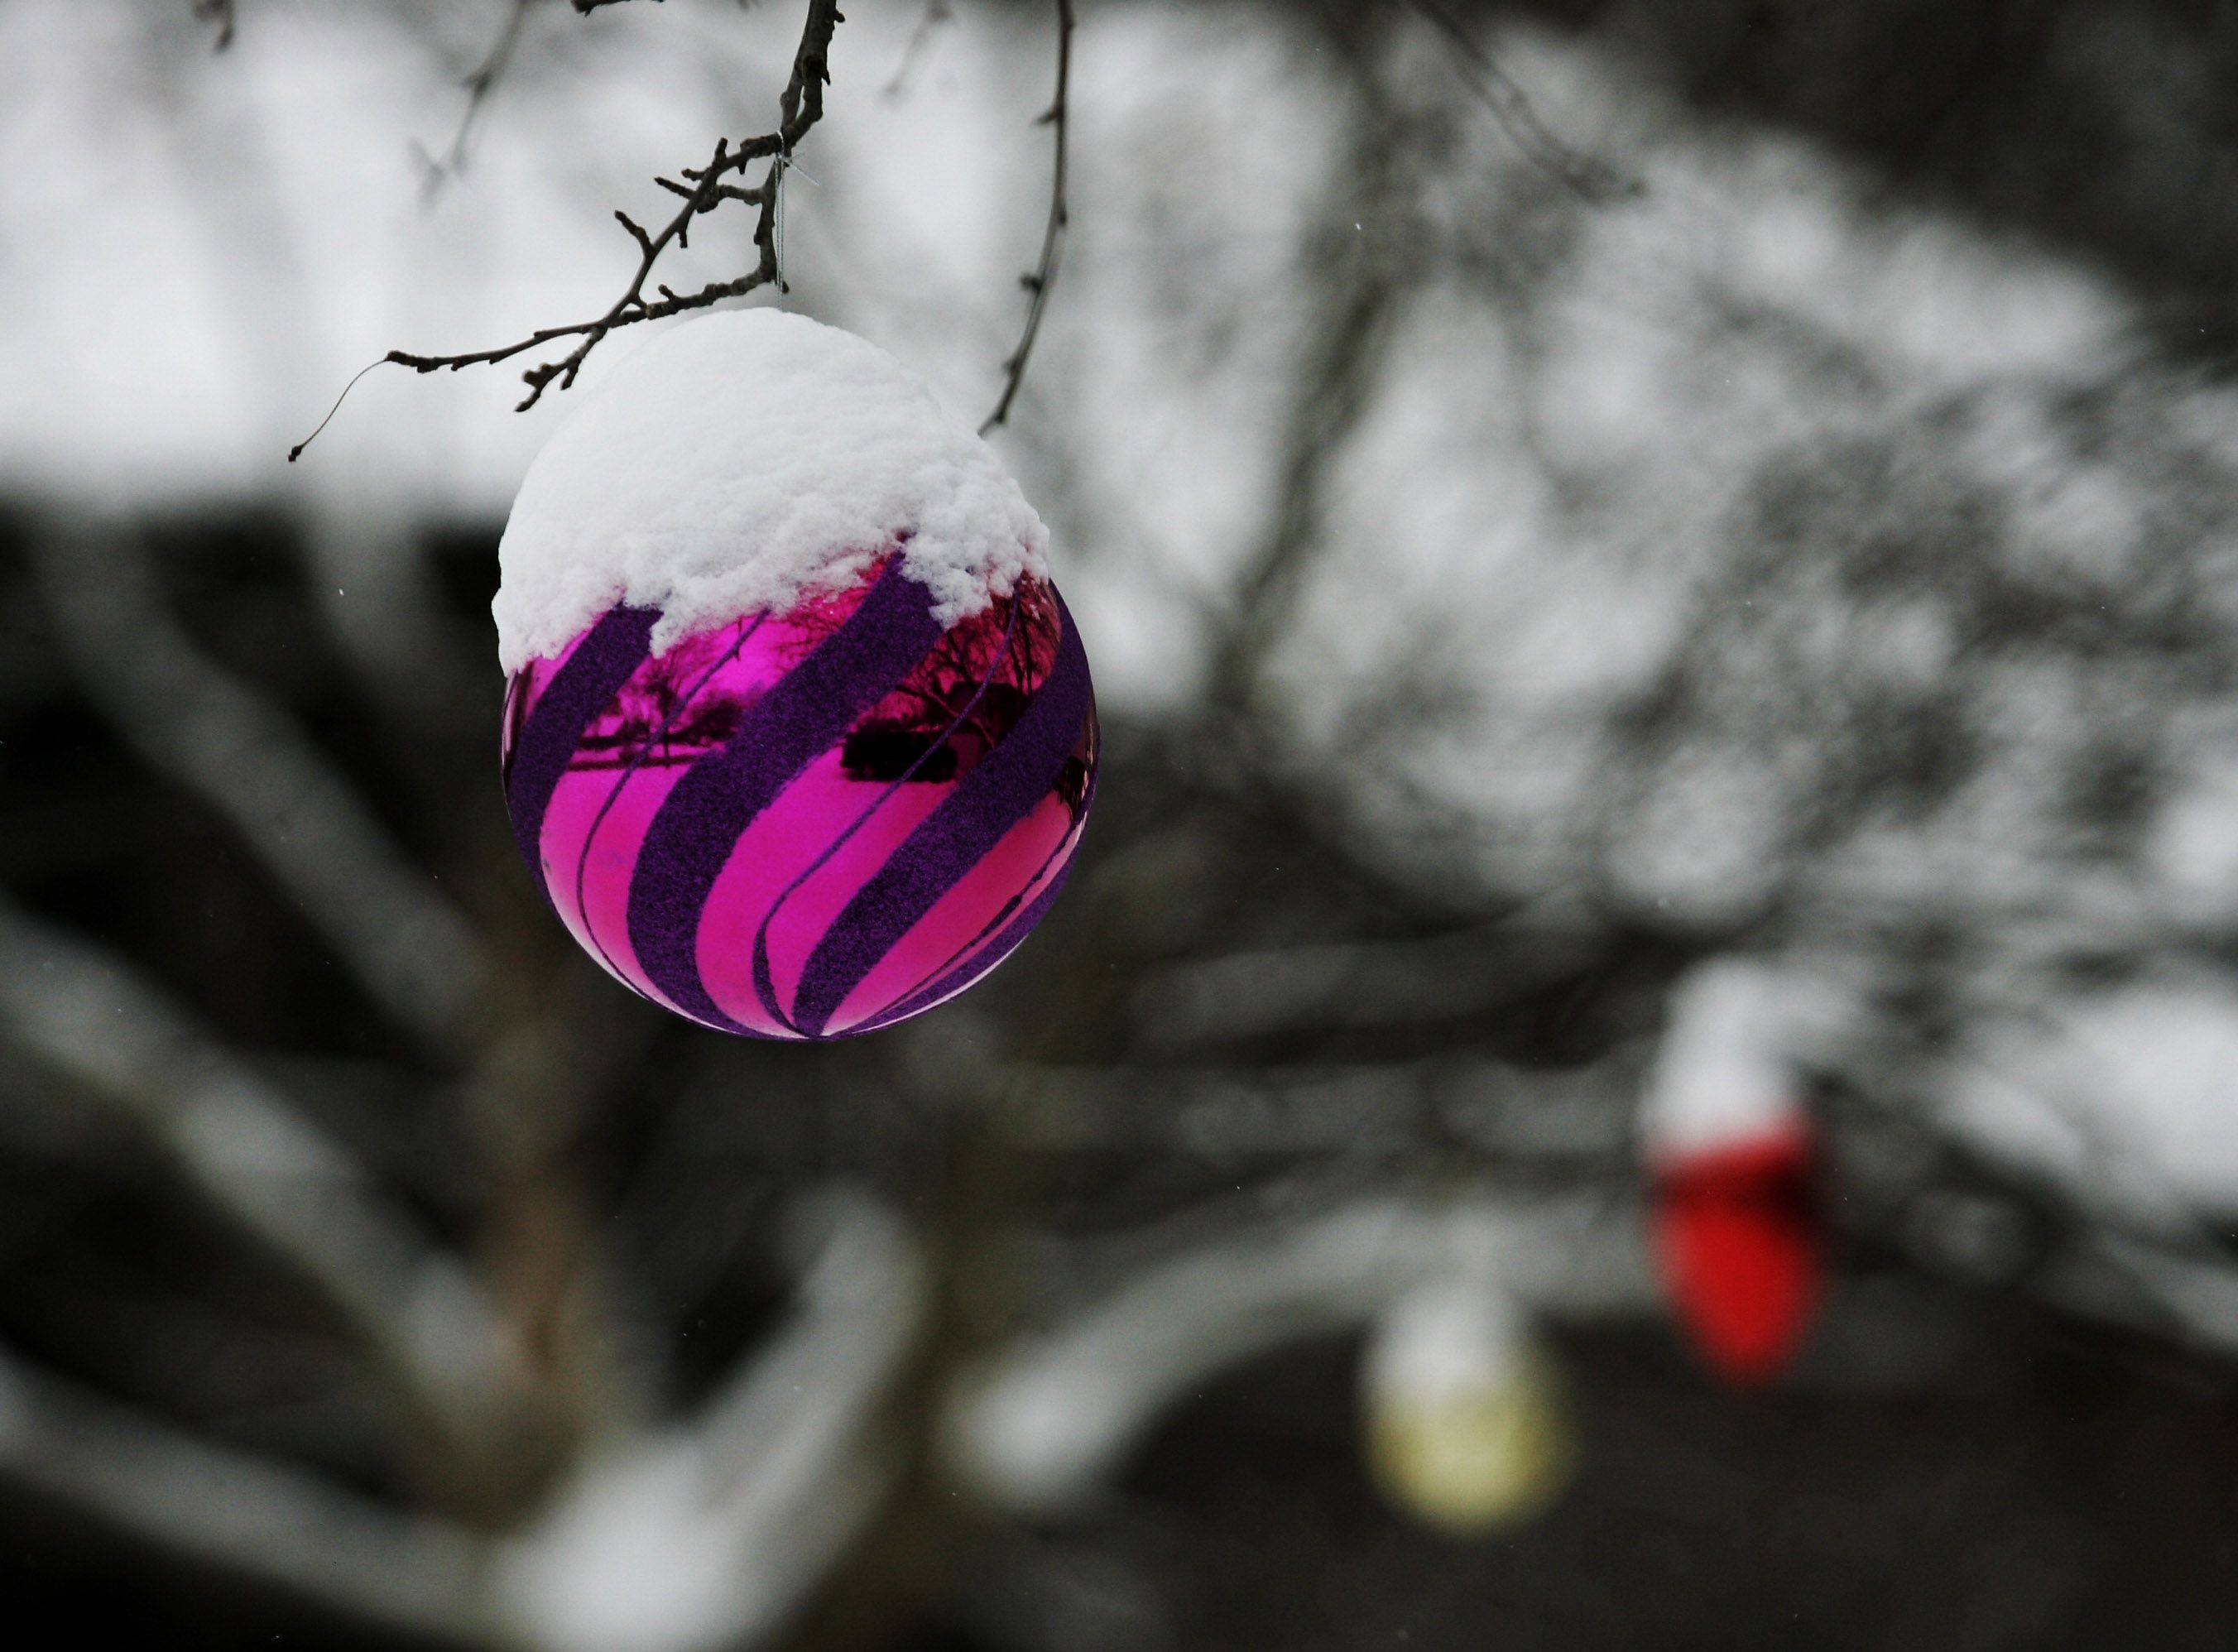 A holiday ornament is covered in snow on a home along Home Ave. on Christmas Day in Palatine.